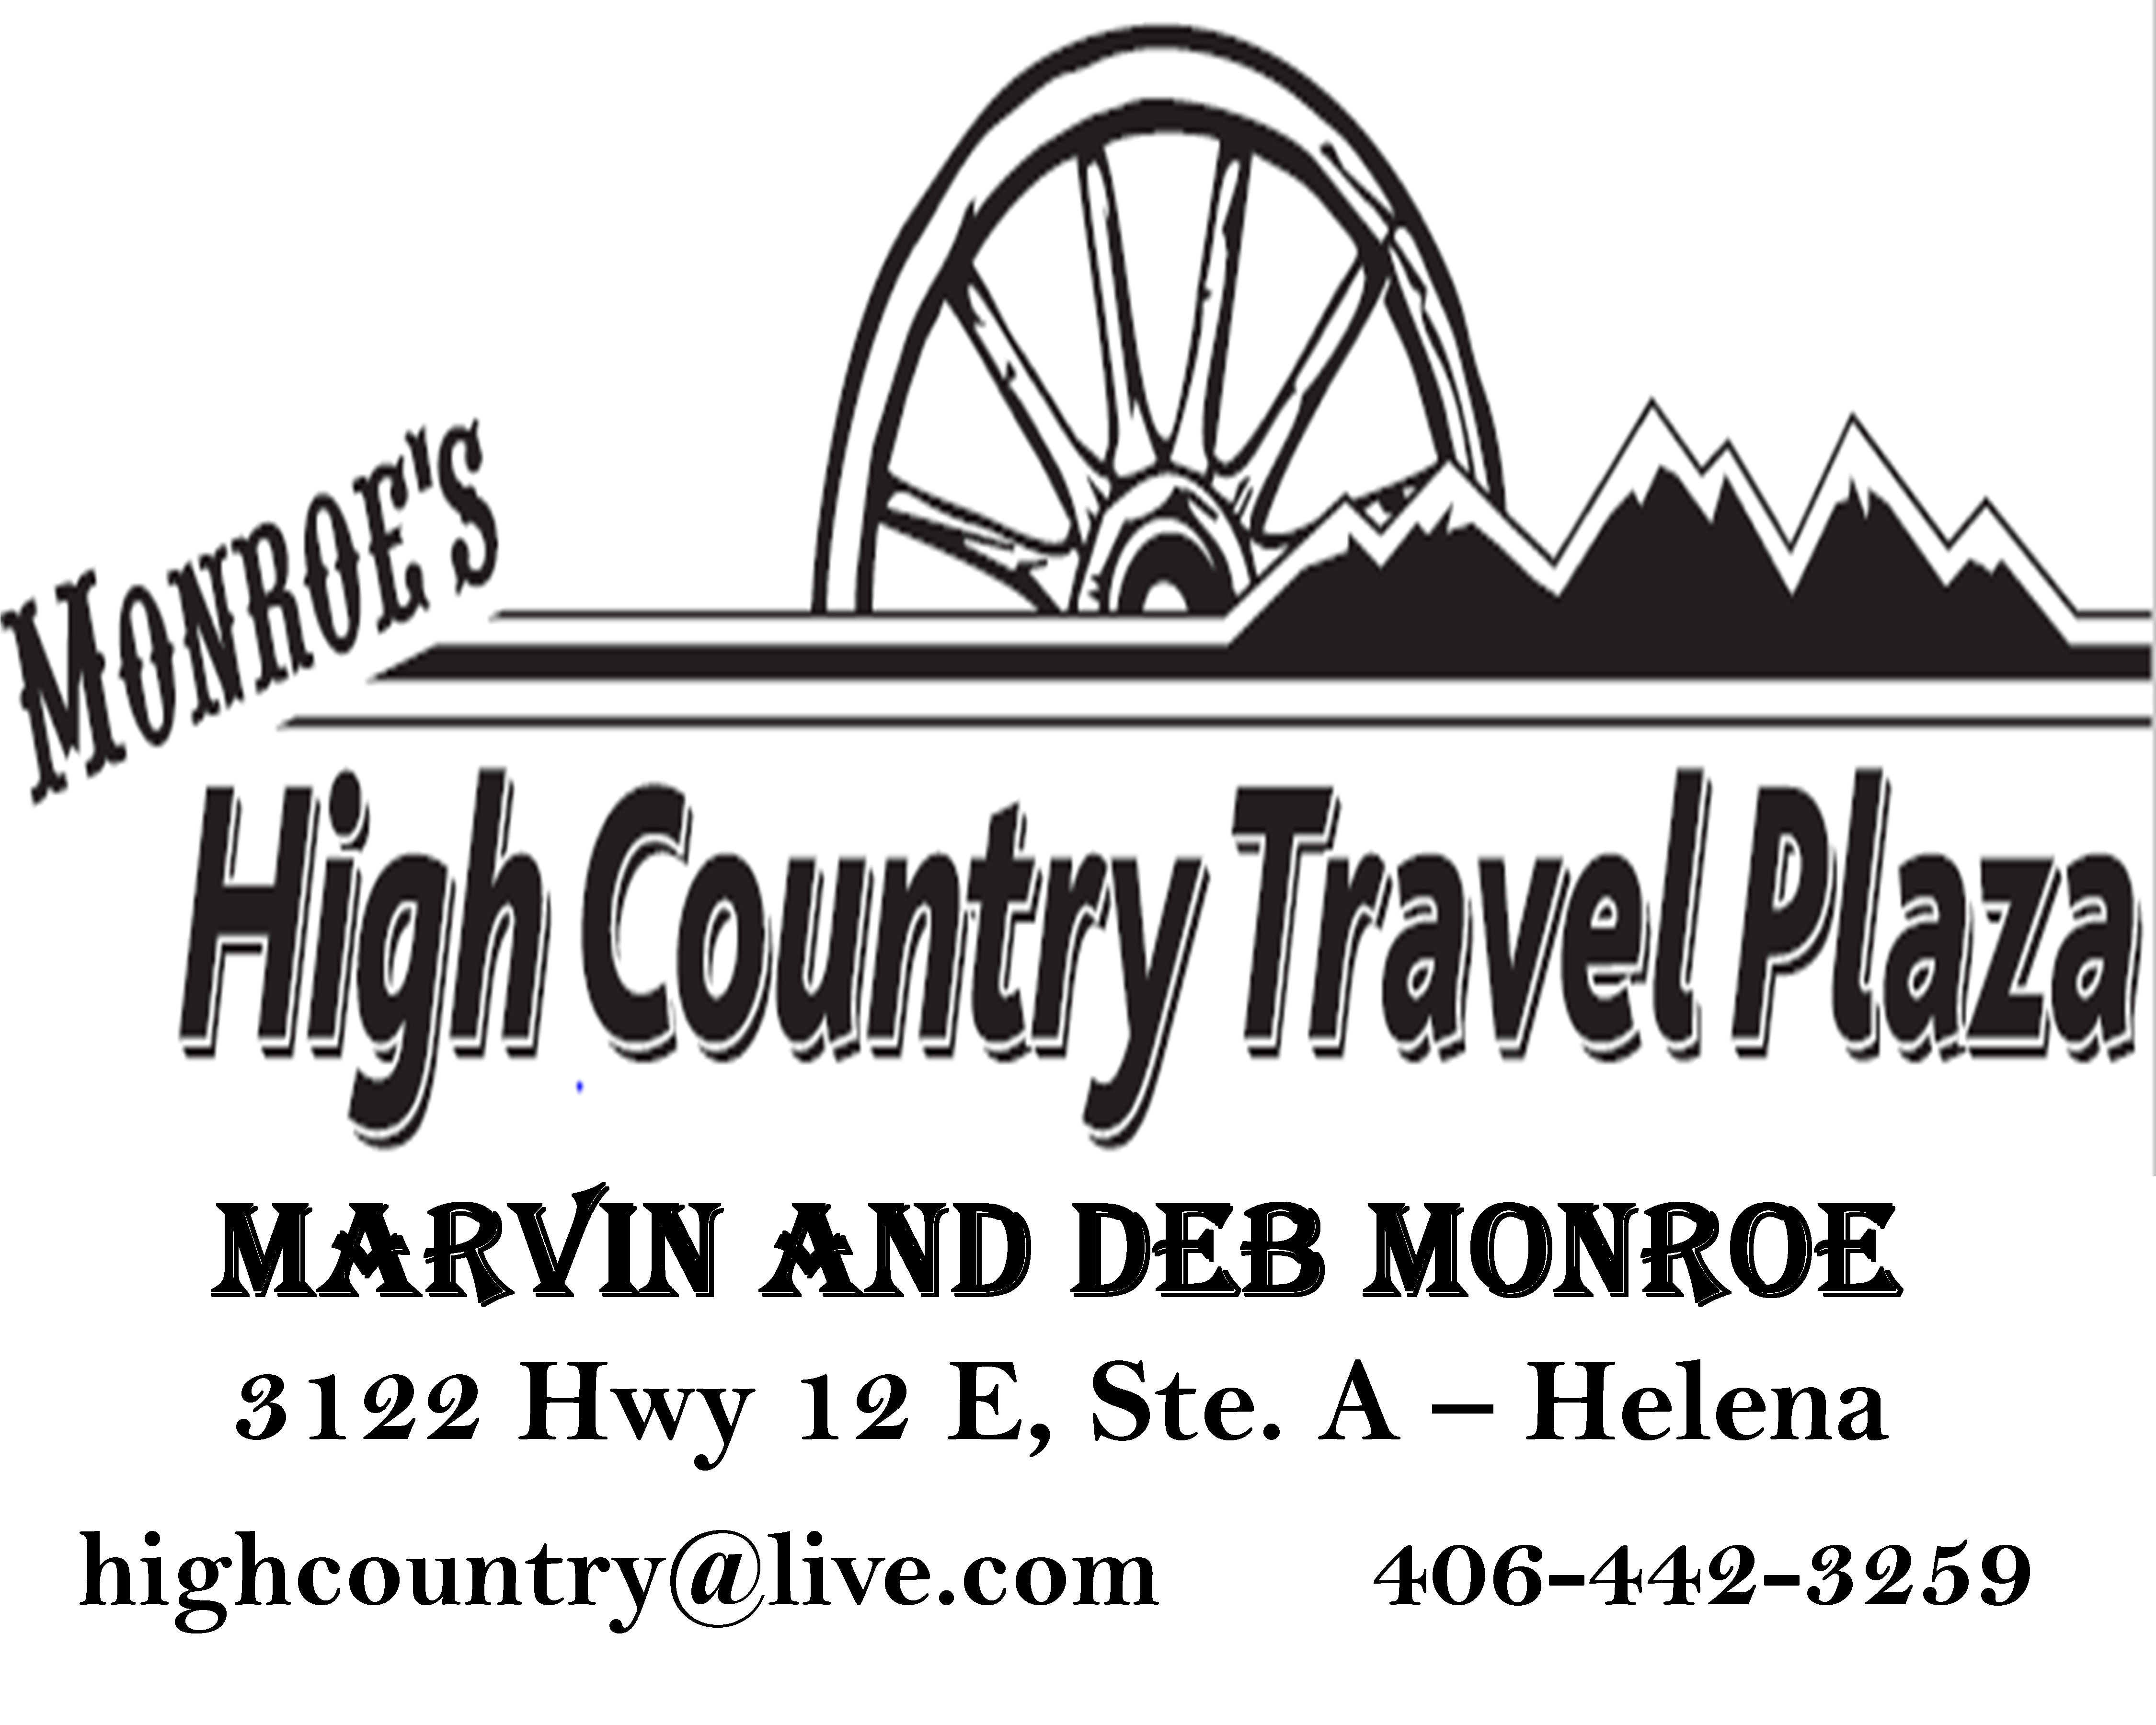 MONROE'S HIGH COUNTRY TRAVEL PLAZA